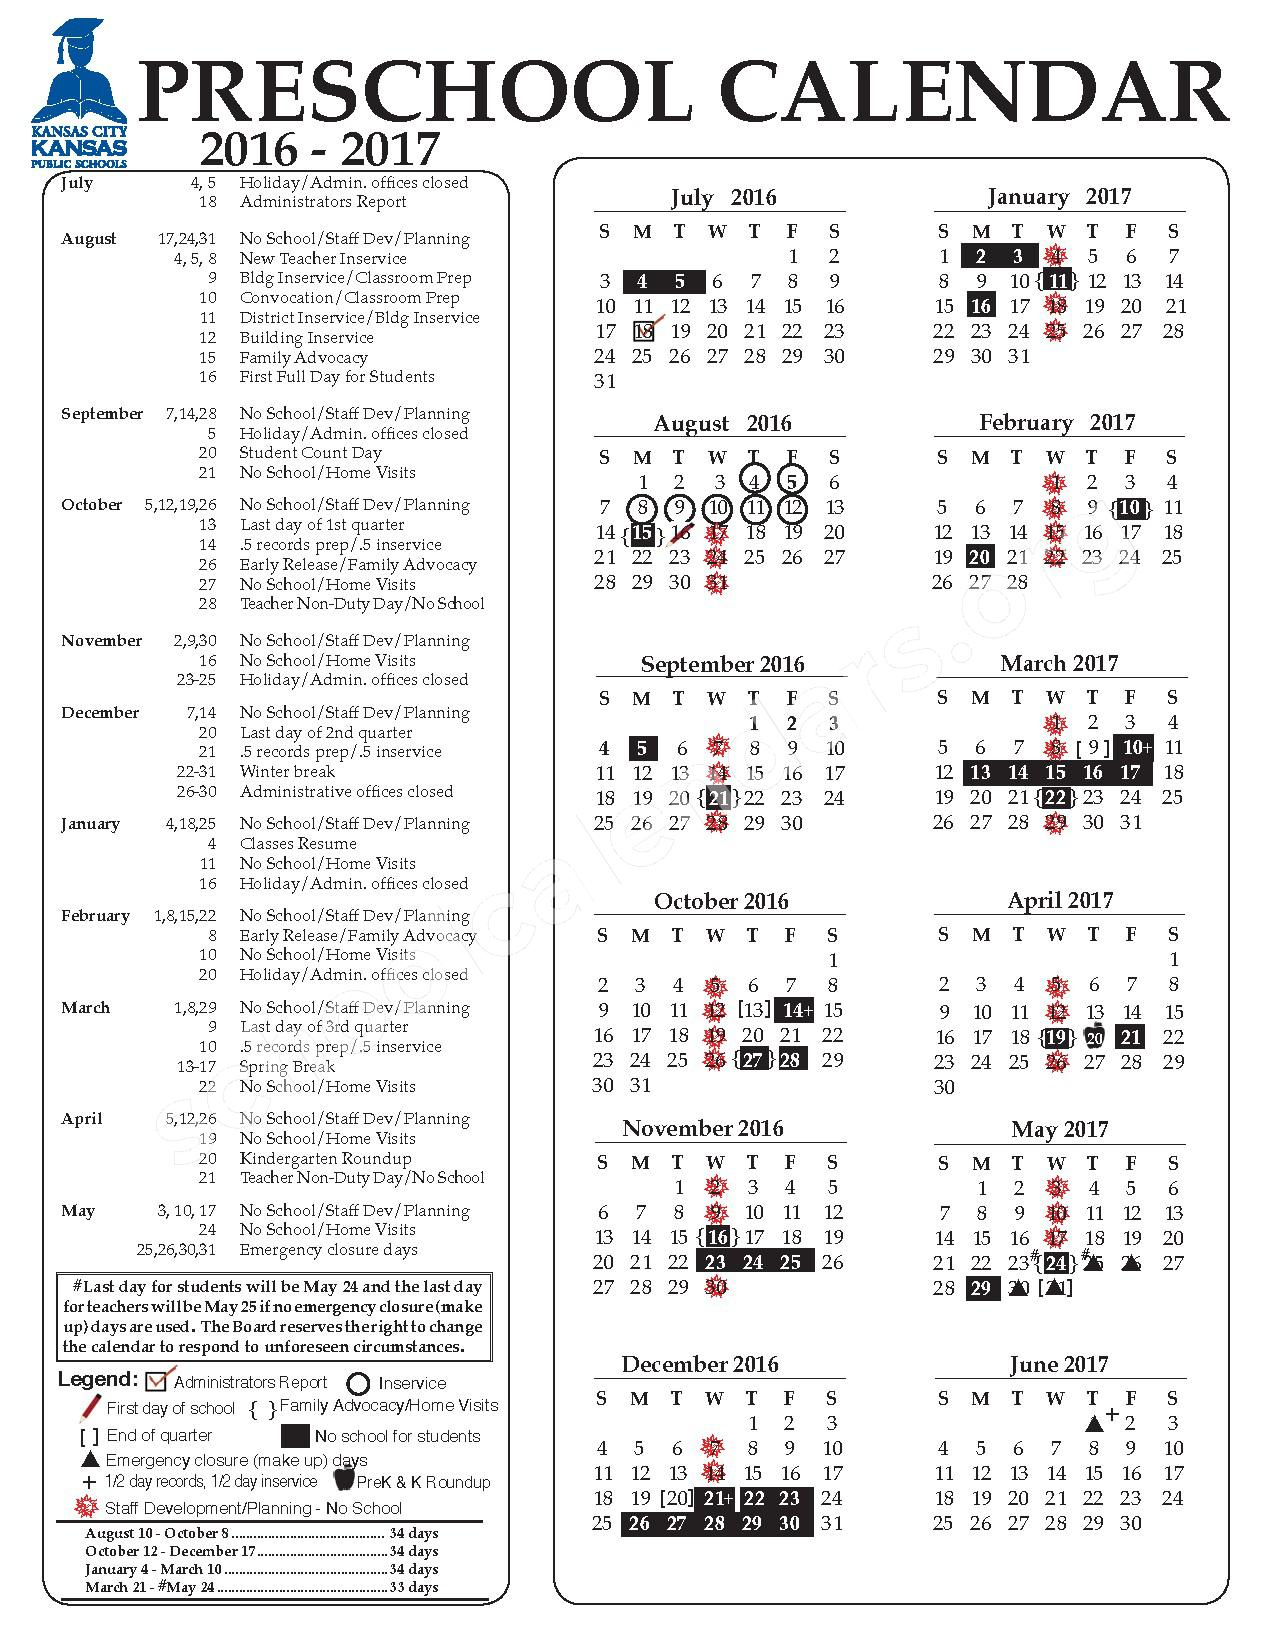 2016 - 2017 Preschool Calendar – Kansas City Unified School District 500 – page 1